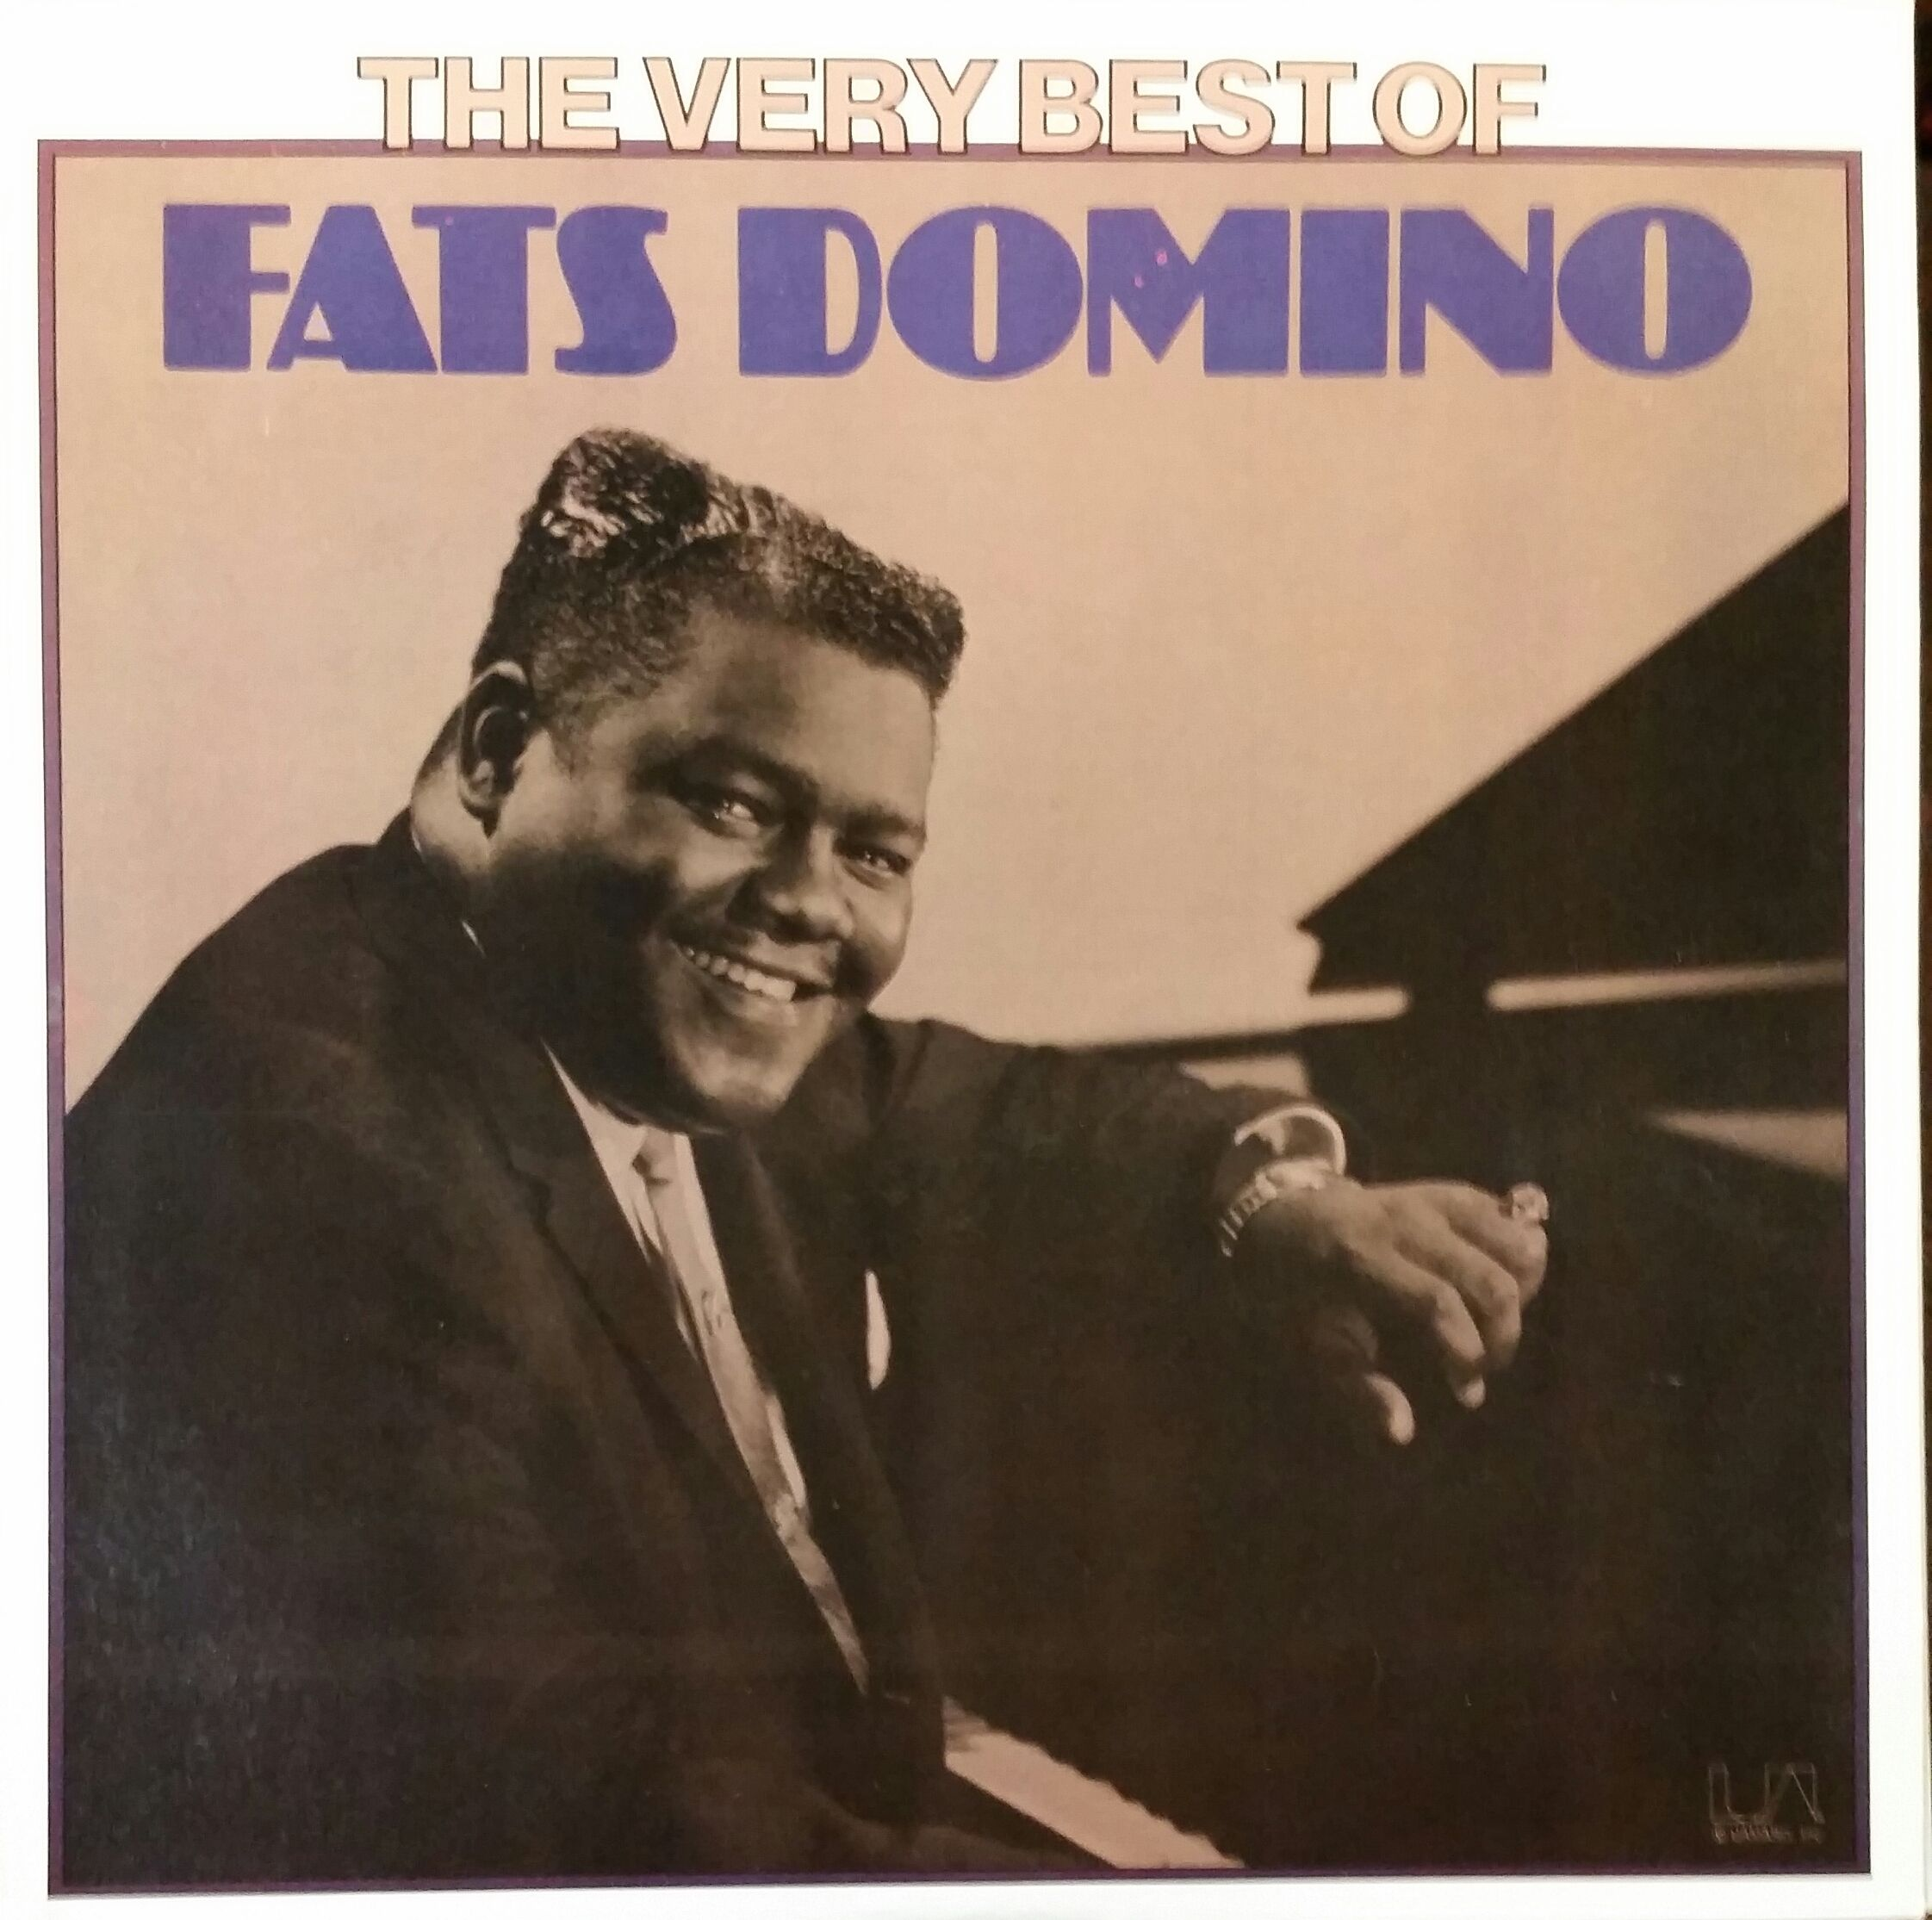 Fats Domino The Very Best Of Fats Domino 1975 This Is A Very Enjoyable Album Of Fats Domino Hits Although It Greatest Songs Songs Vinyl Record Collection